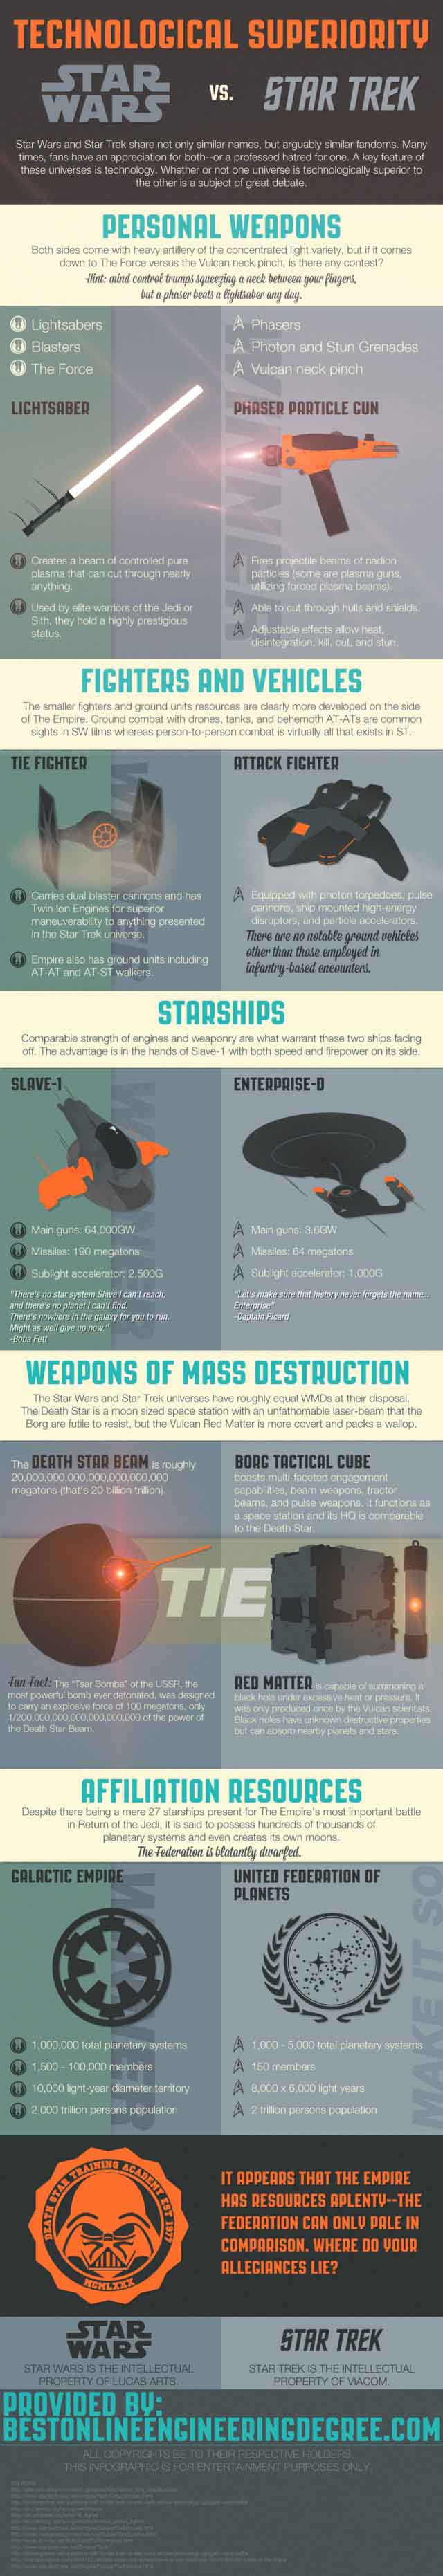 Weapons of Star Trek vs Star Wars